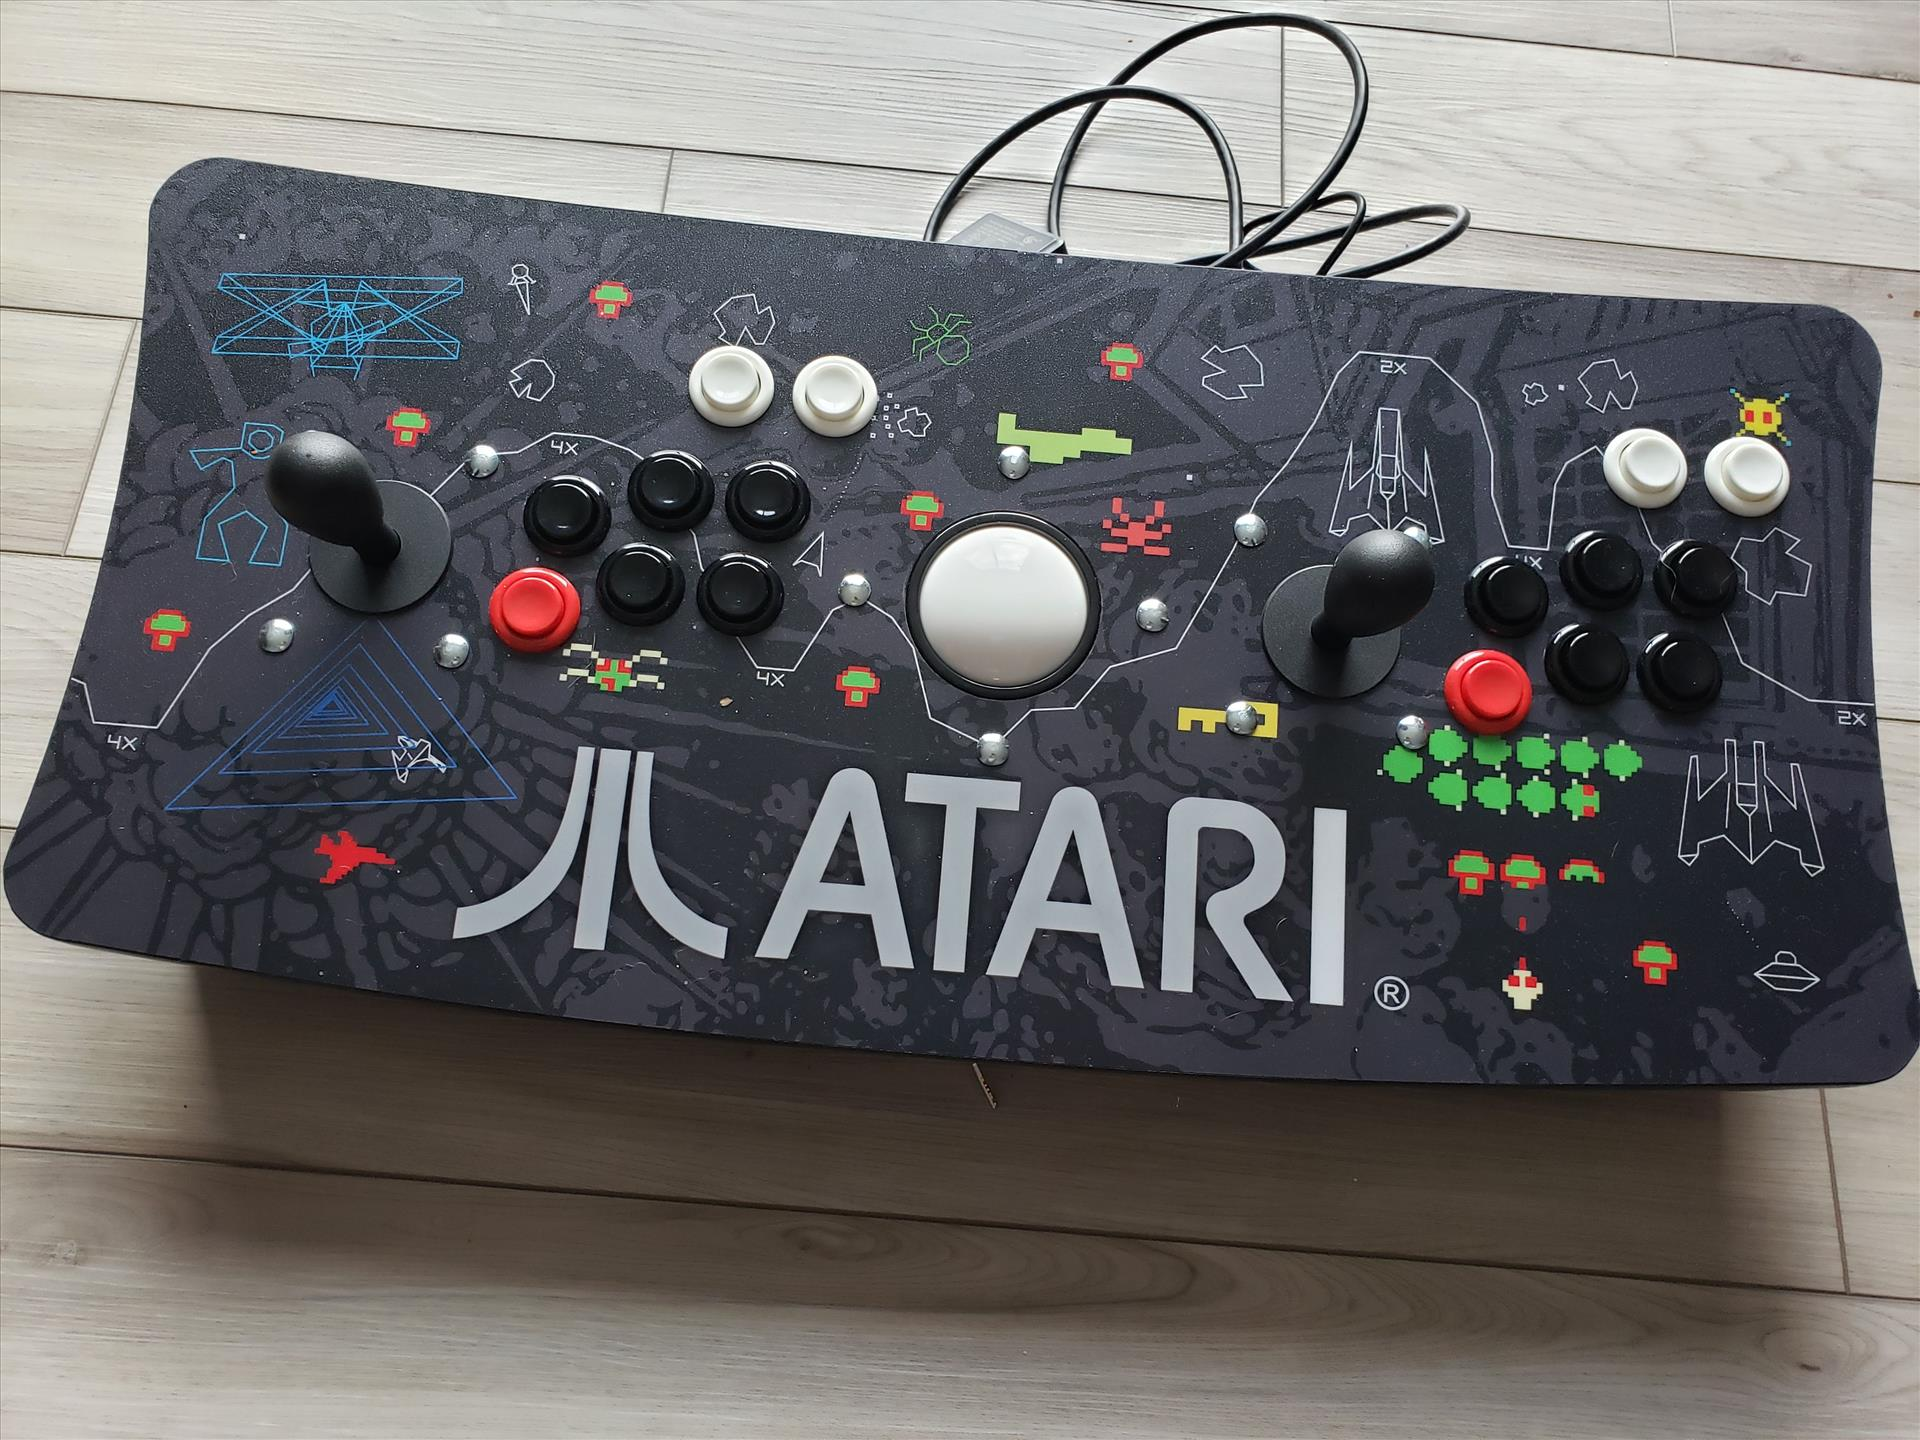 Atari Ultimate Dual Arcade Fight Stick with Trackball Mod - Connections